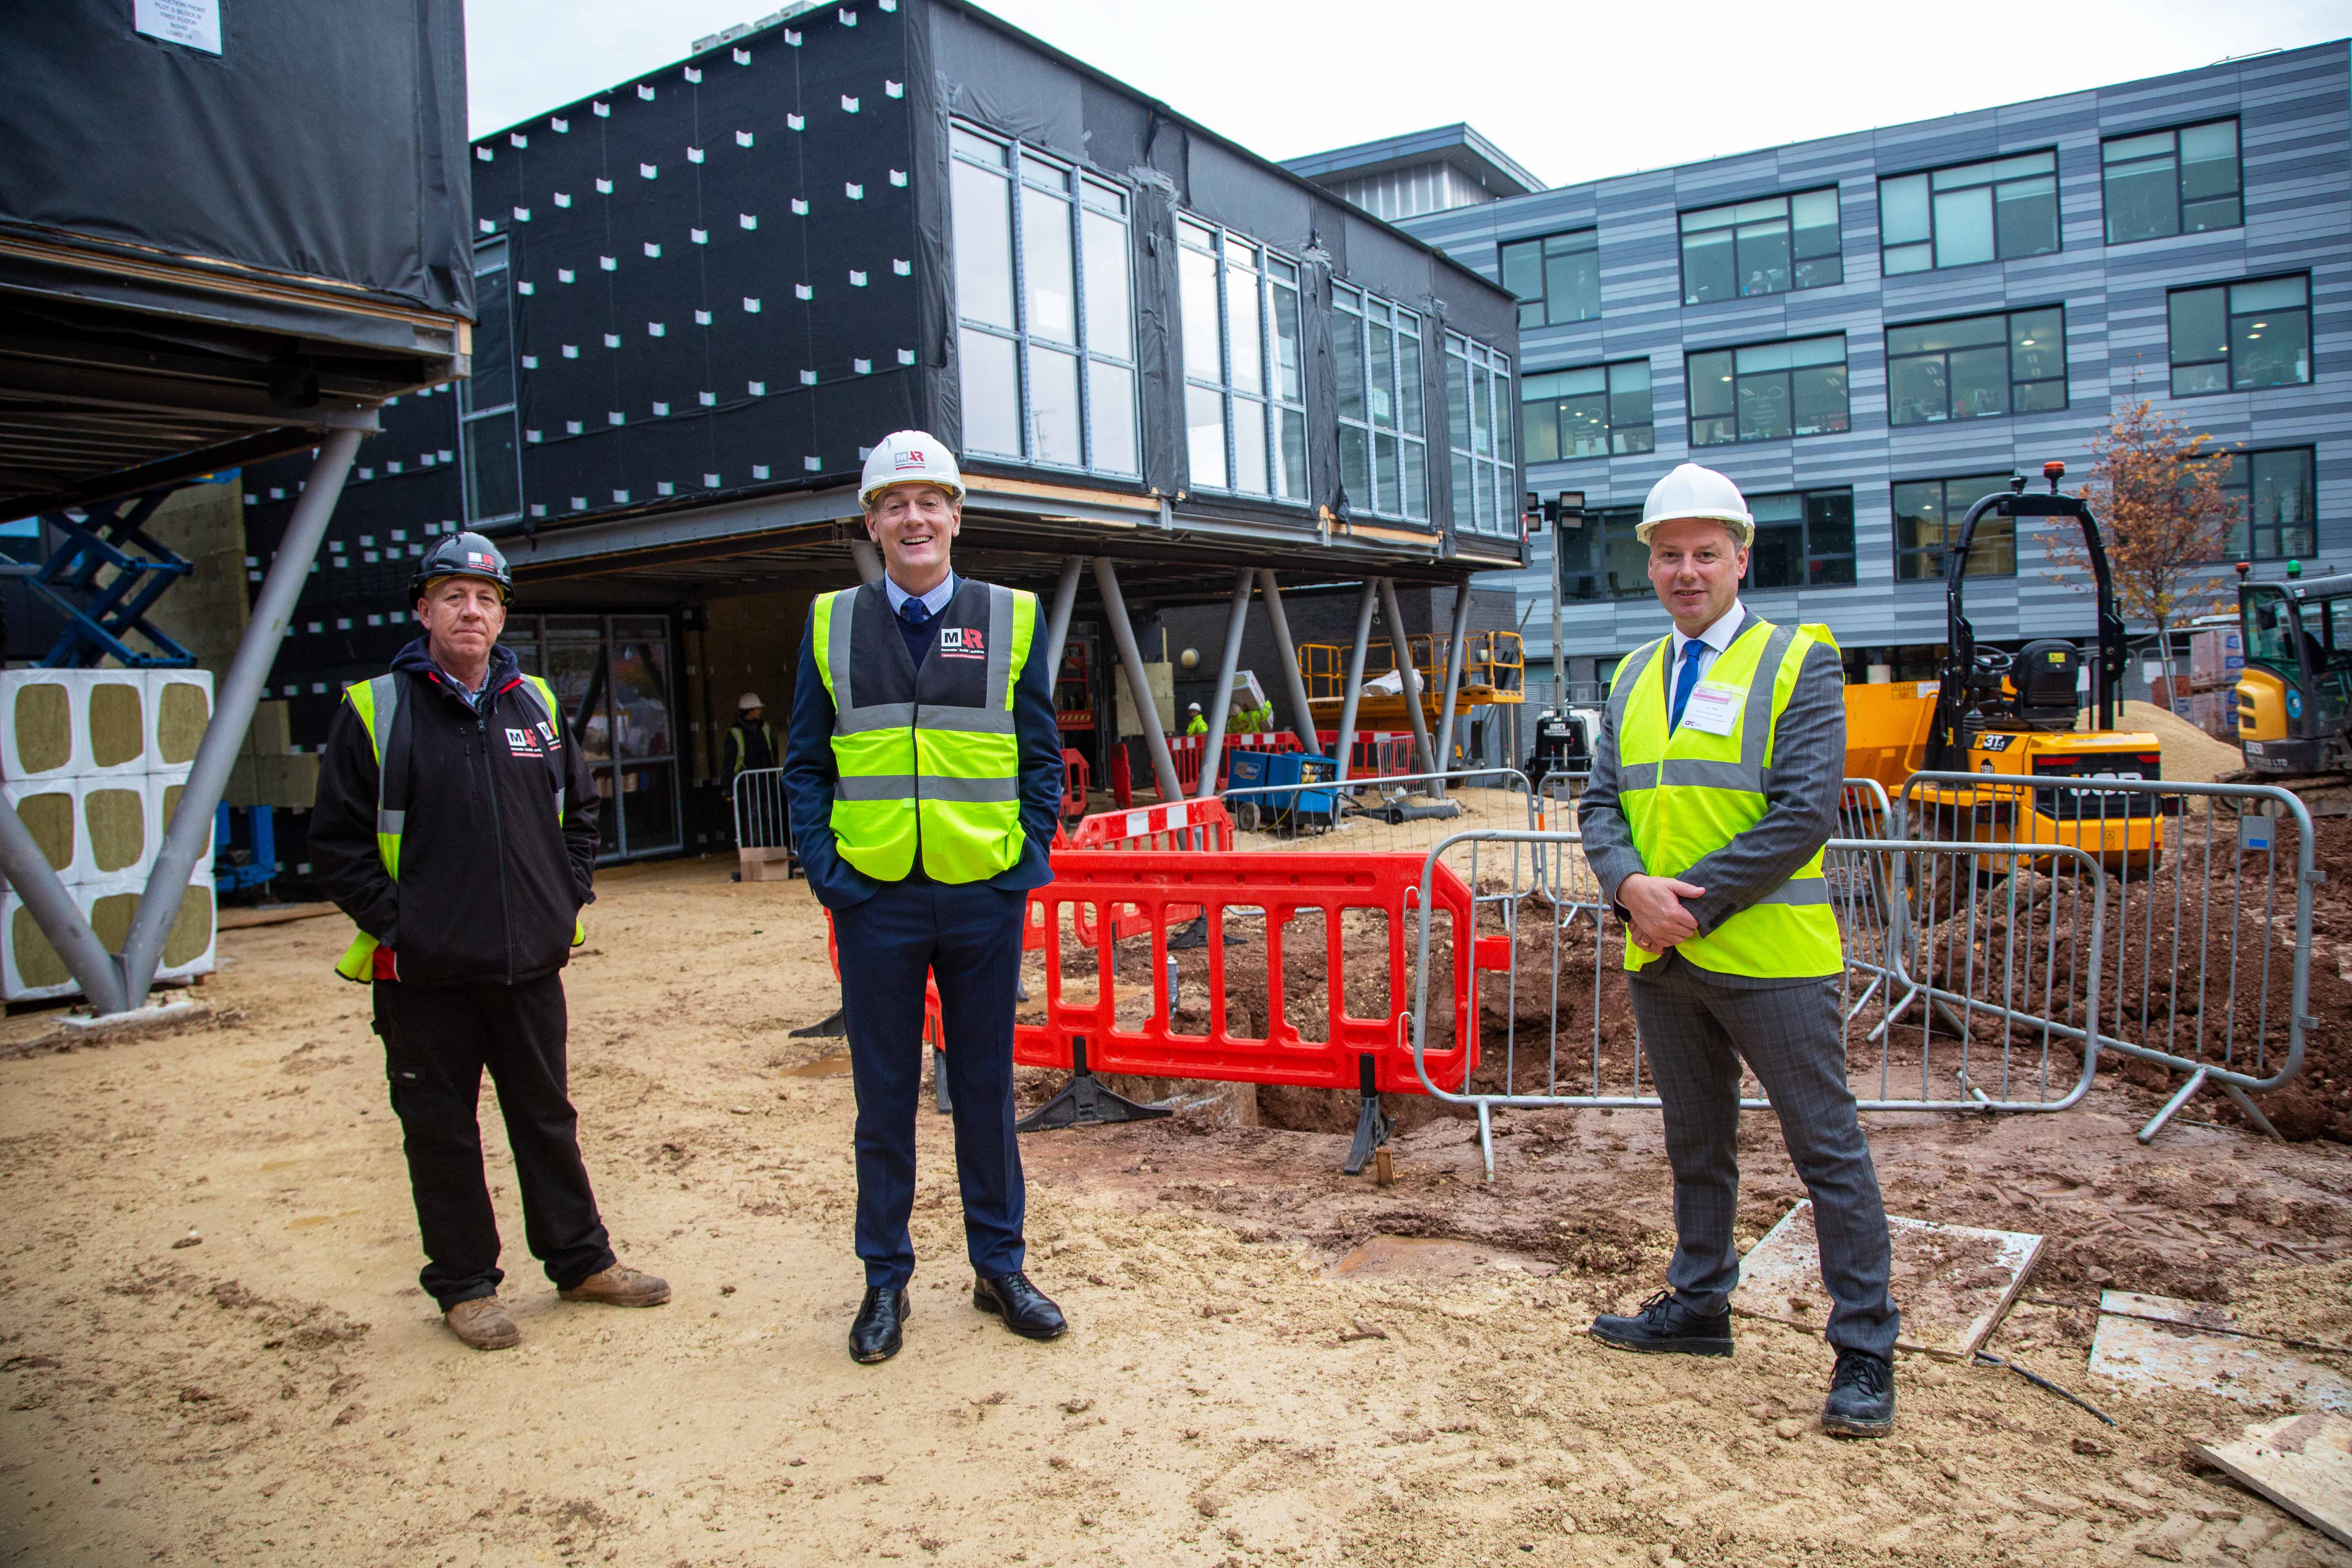 Andy Preston Middlesbrough Mayor visits M-AR modular offices at BoHo 8 campus